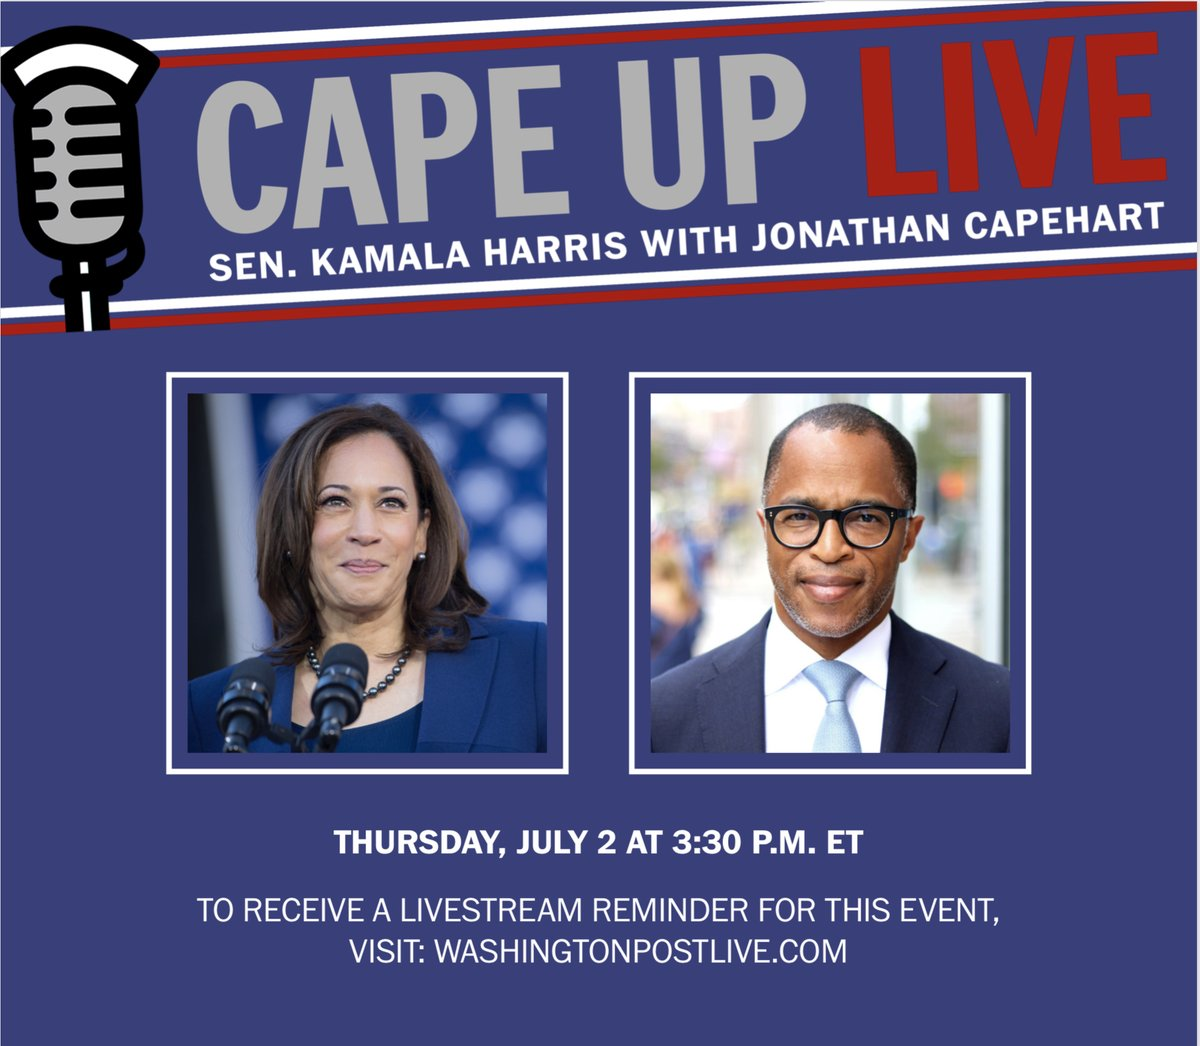 .@KamalaHarris joins @CapehartJ today at 3:30 PM, tune in!